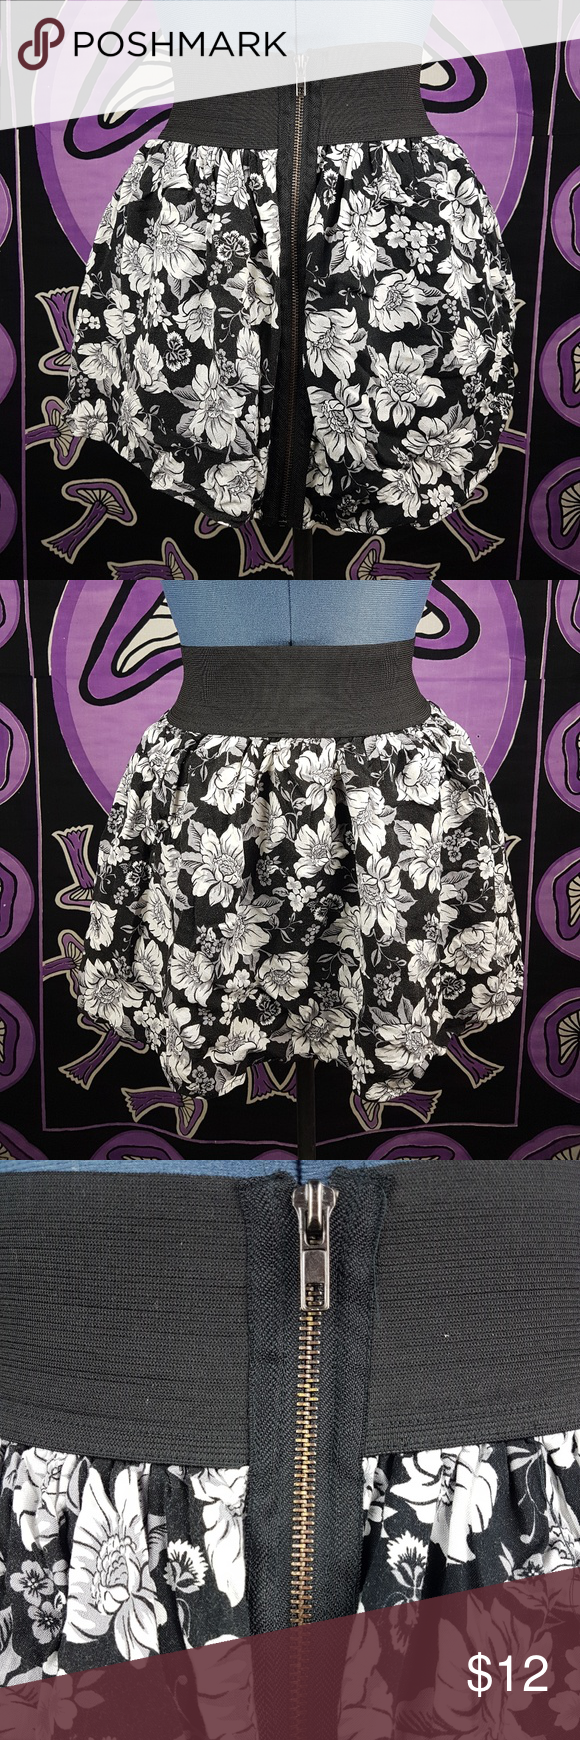 3571eeb088dd2 Material Girl XS Mini Floral Skirt White Black Zip Juniors   Womens  Material Girl by Madonna